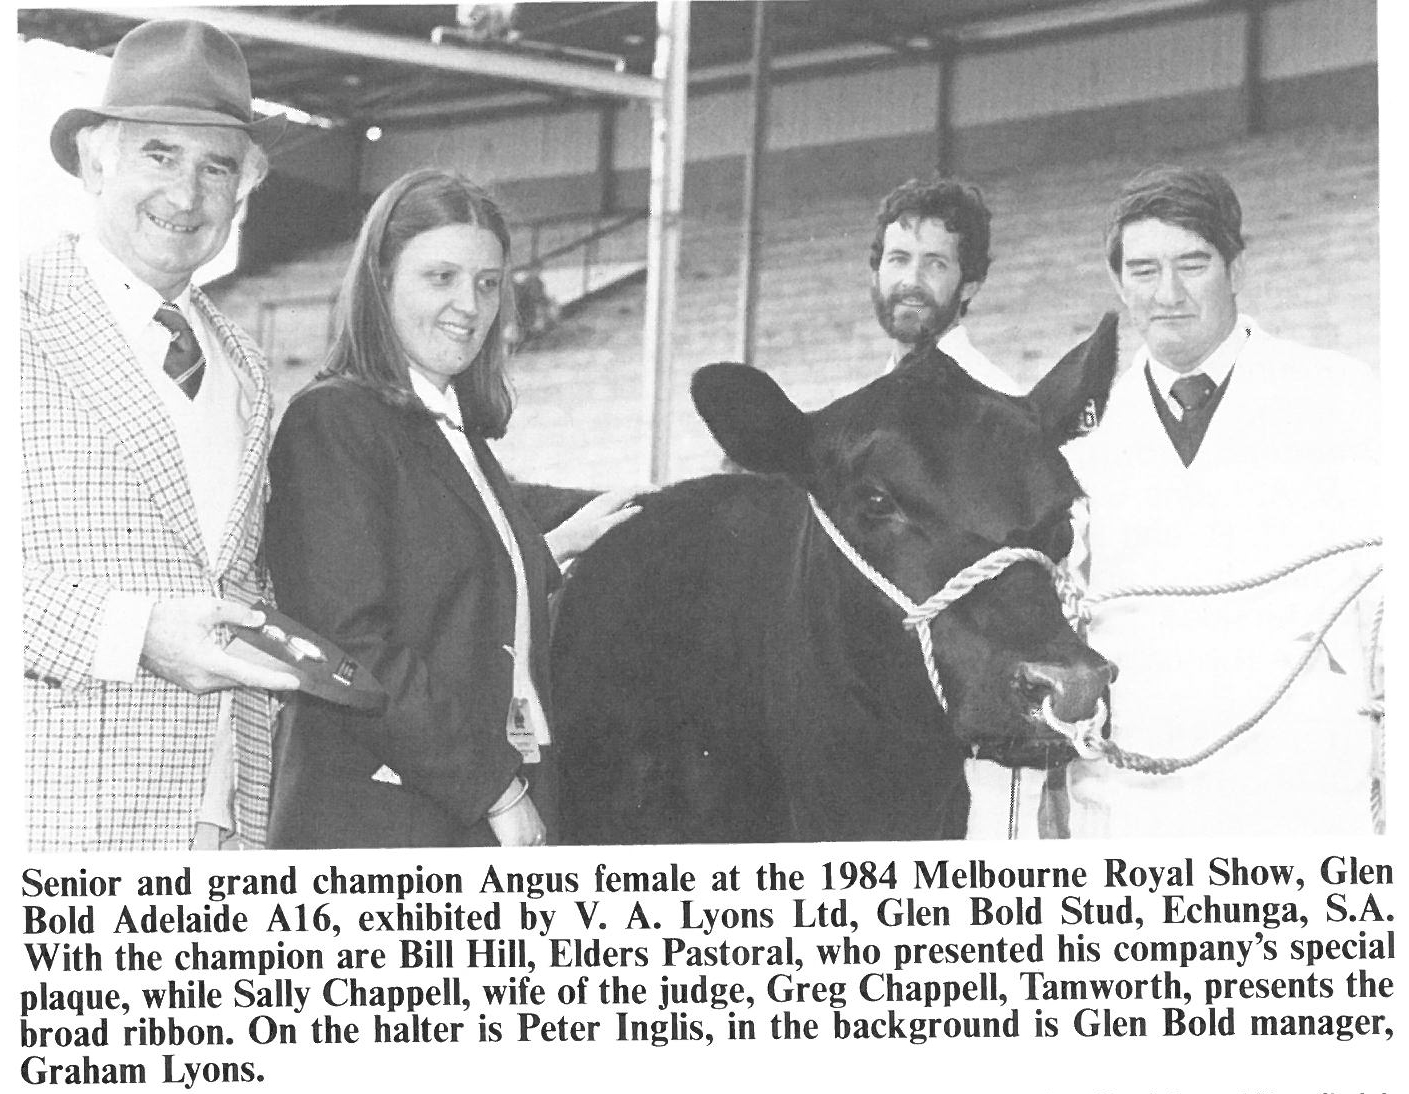 Peter Inglis 1983 (right) with Bill Hill, Sally Chappell and Graham Lyons